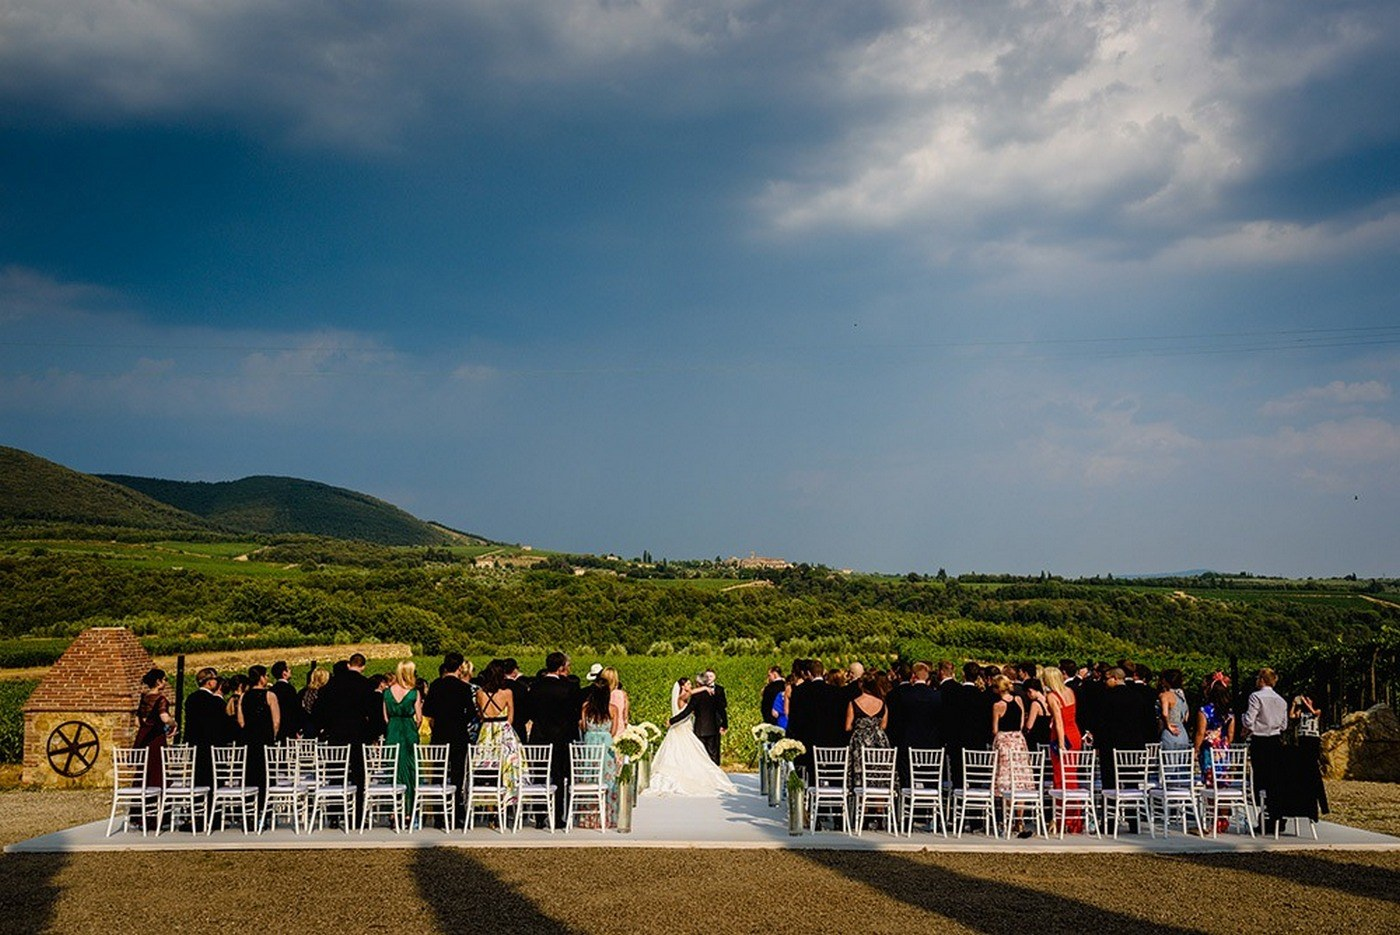 weddings-in-tuscany